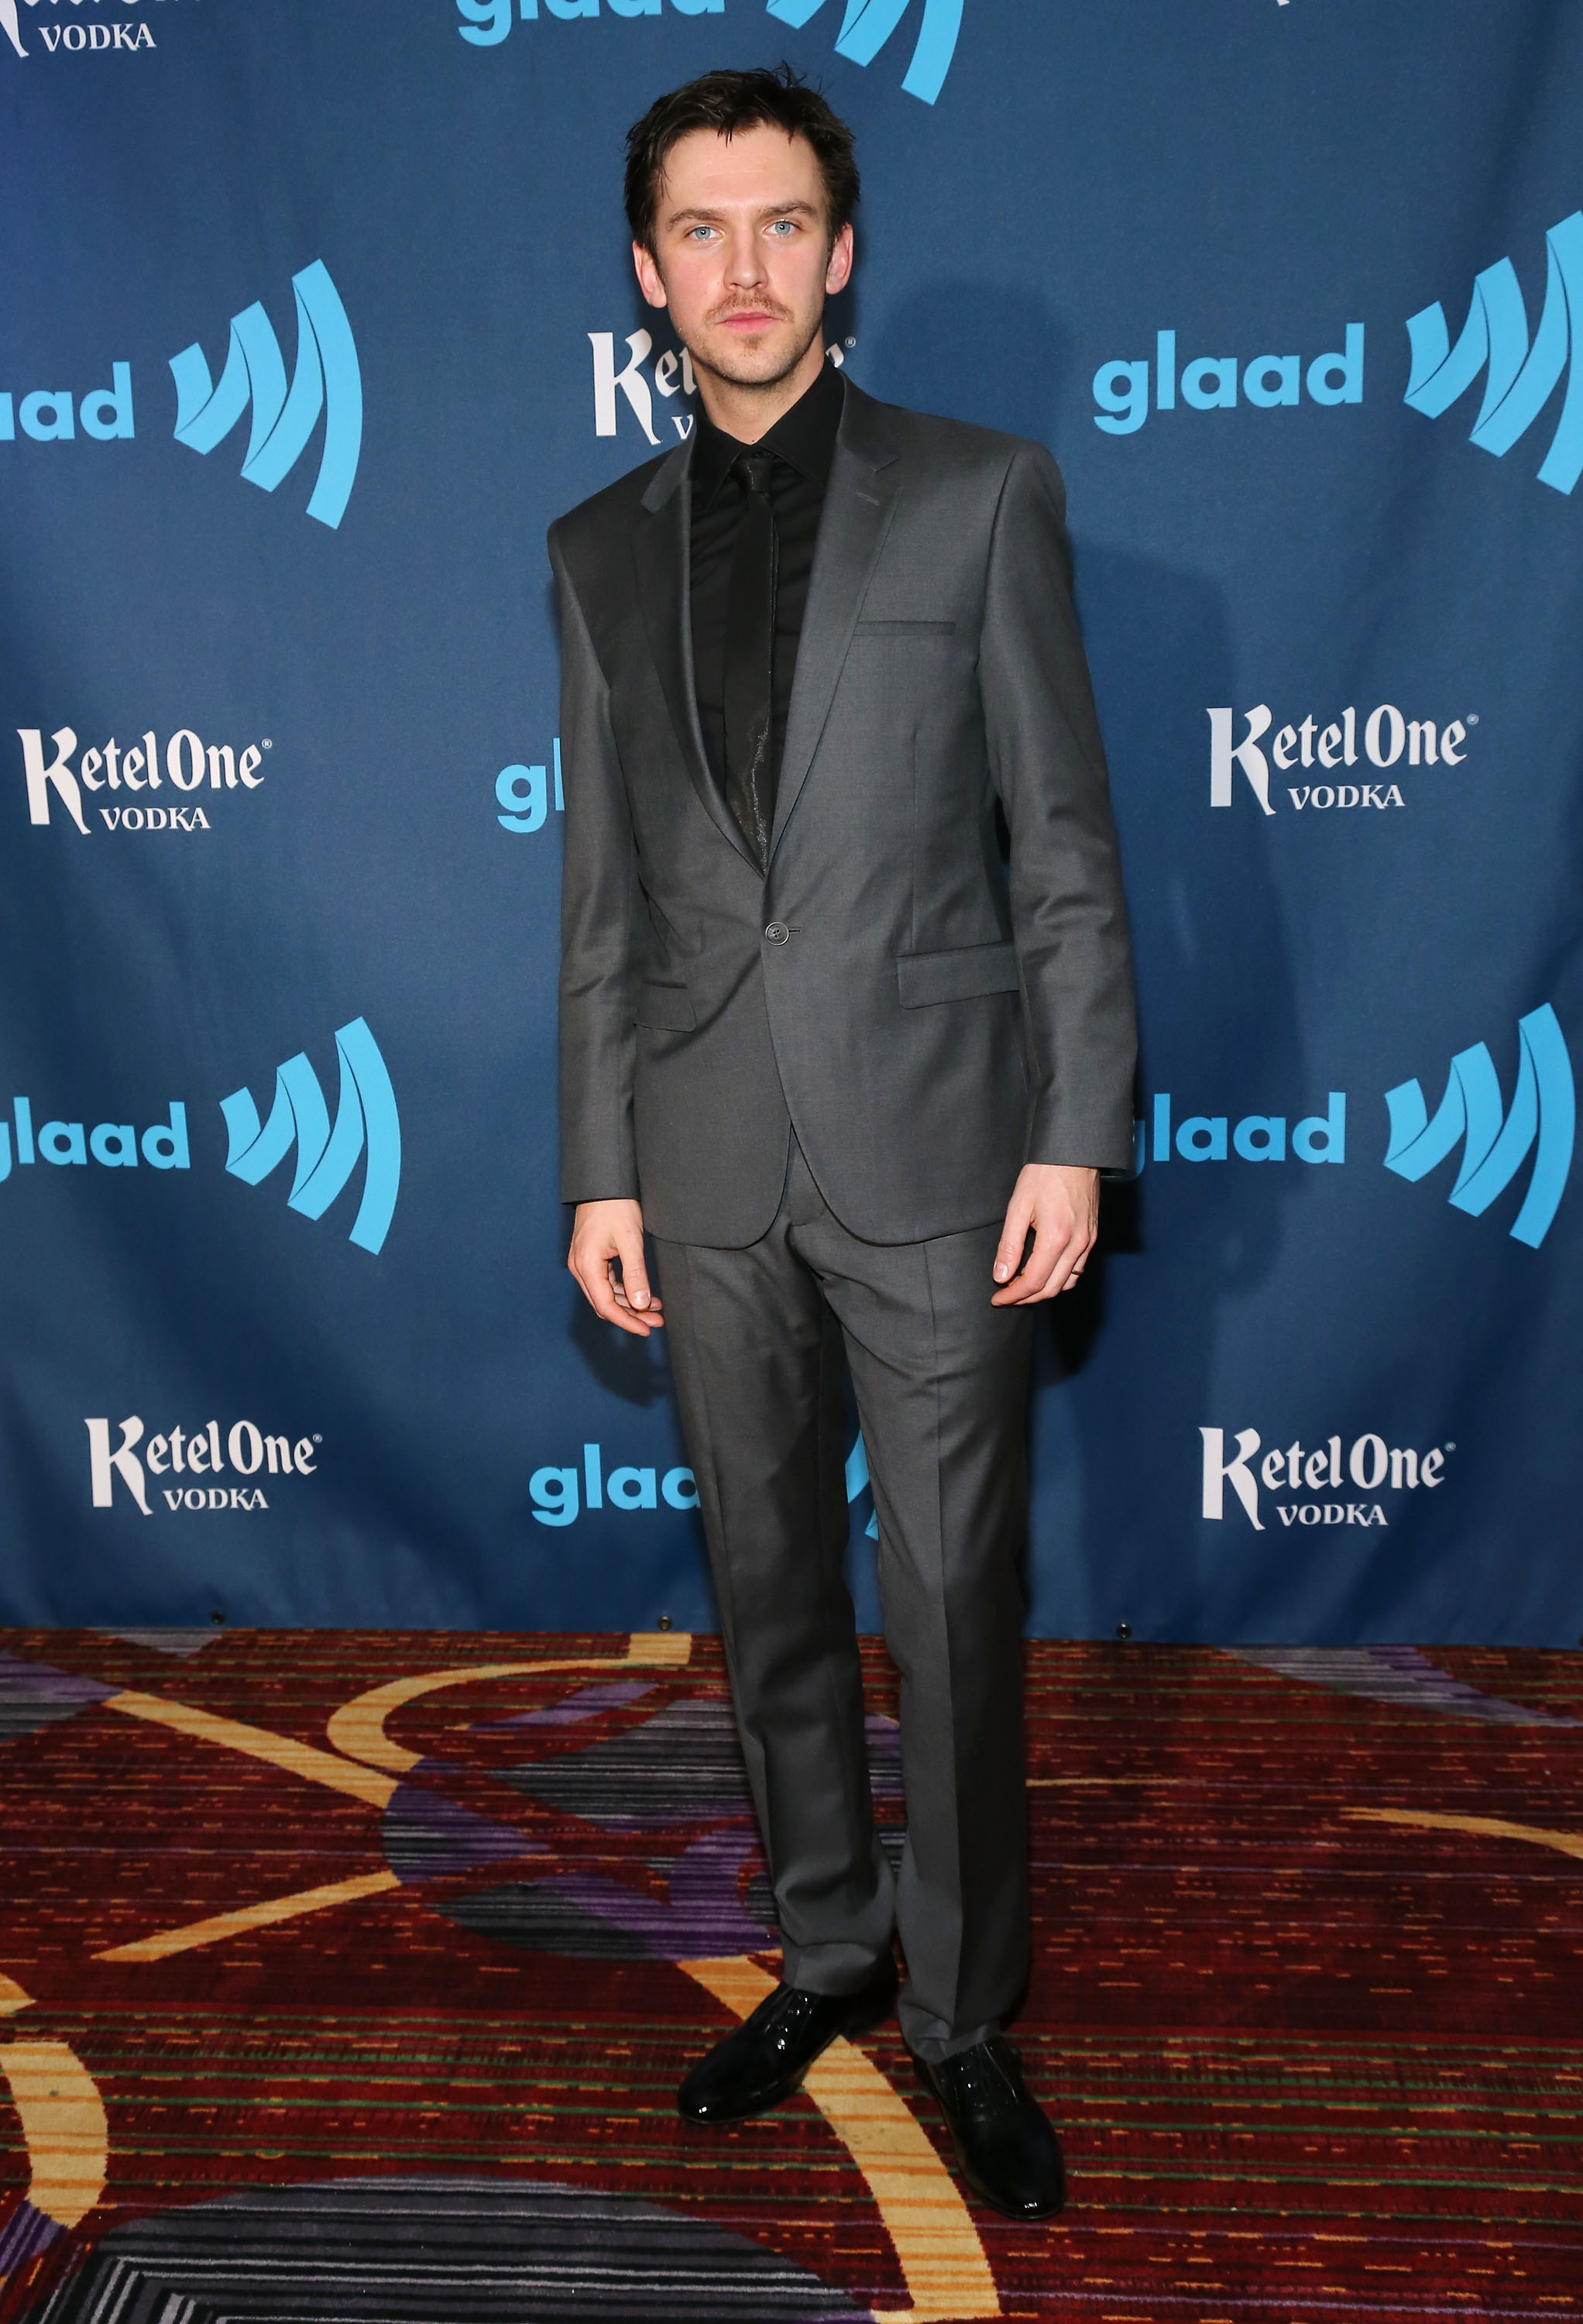 Calvin Klein Outfits Dan Stevens for the 24th Annual GLAAD Media Awards